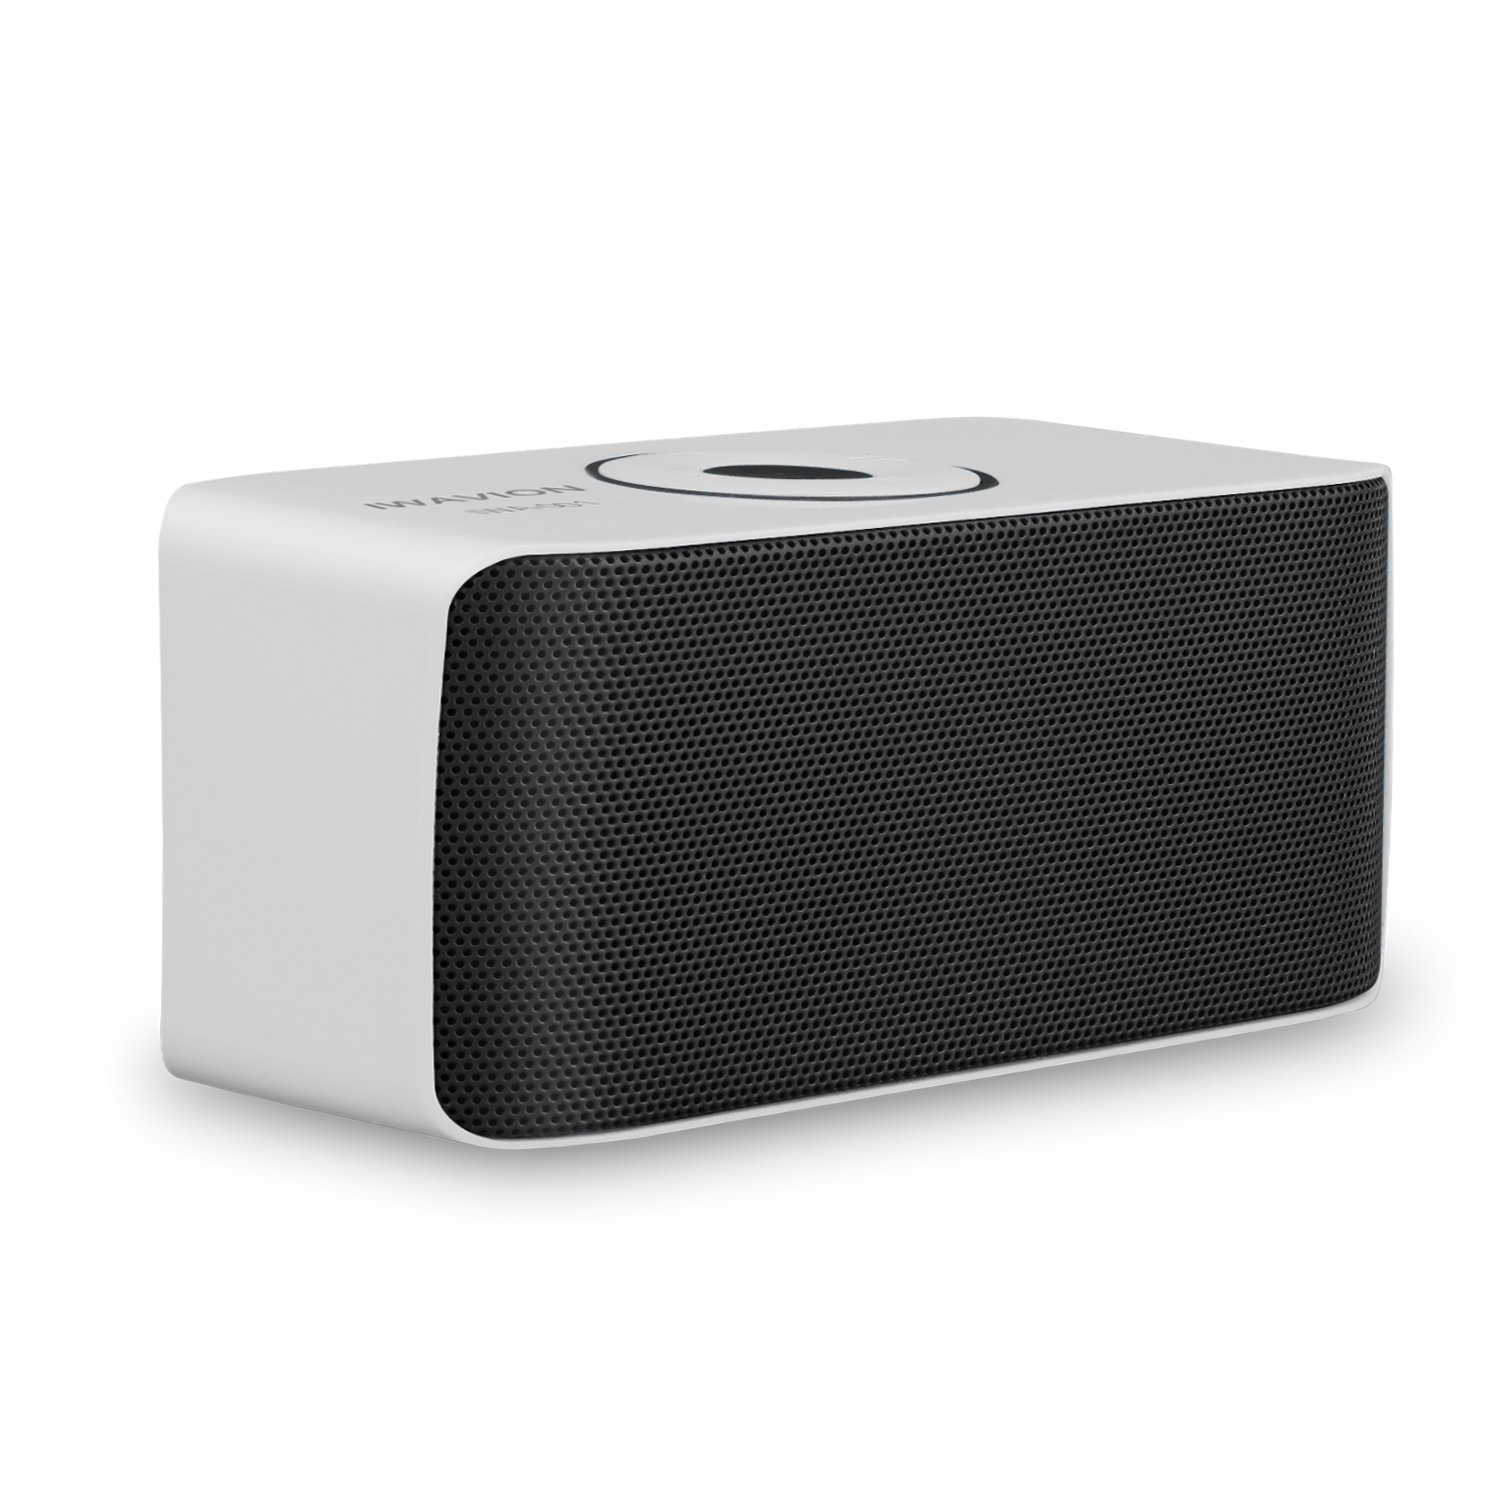 Handy Bluetooth Speaker: Amazon.com